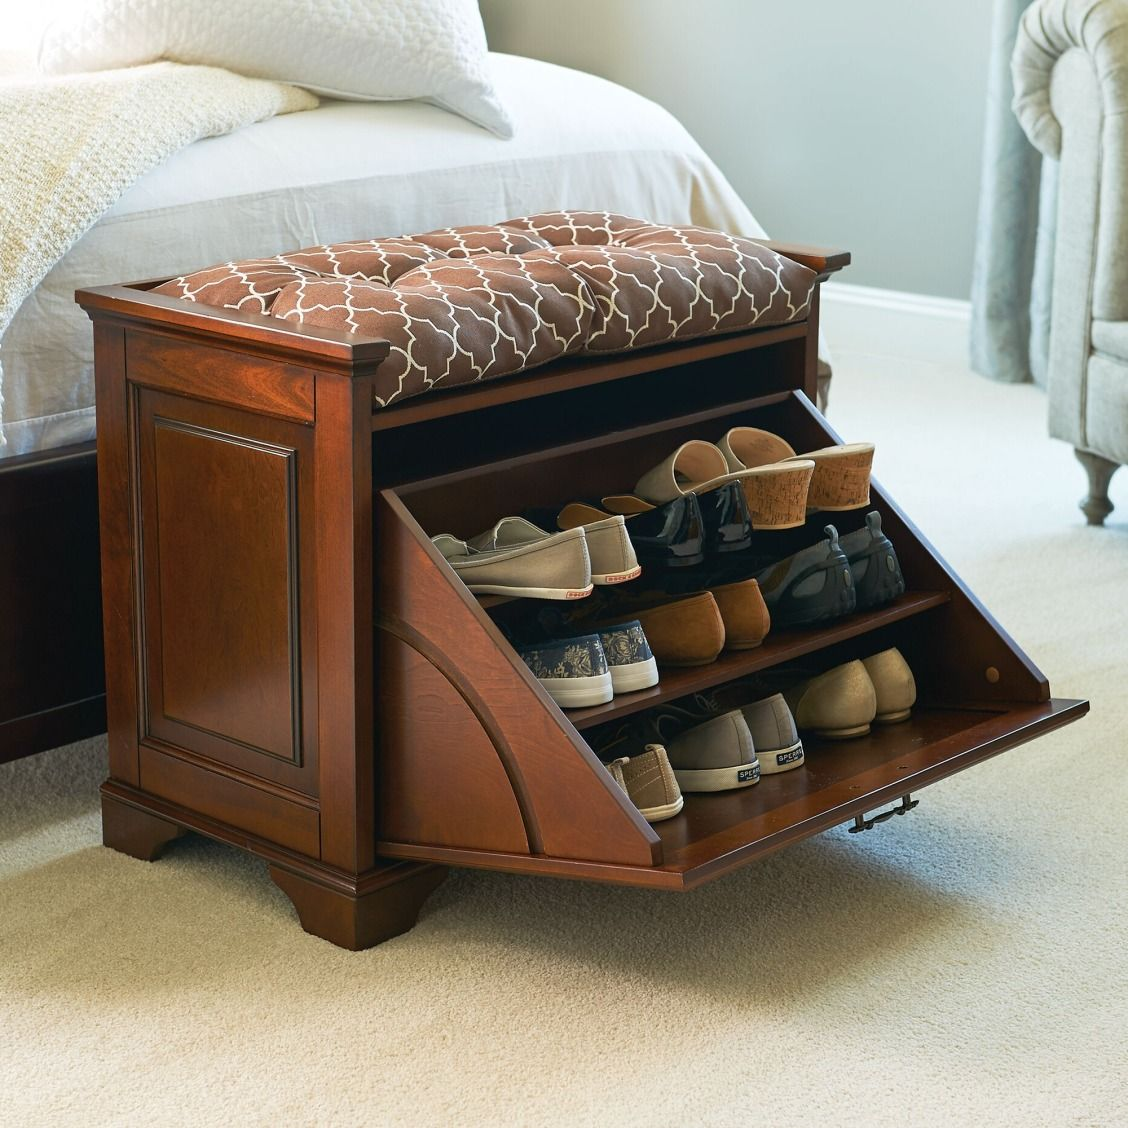 Looking For Hidden Shoe Storage Pretty Indoor Furniture Piece And A Comfy Seat All Rolled Into One Our Woo Space Saving Furniture Furniture Indoor Furniture